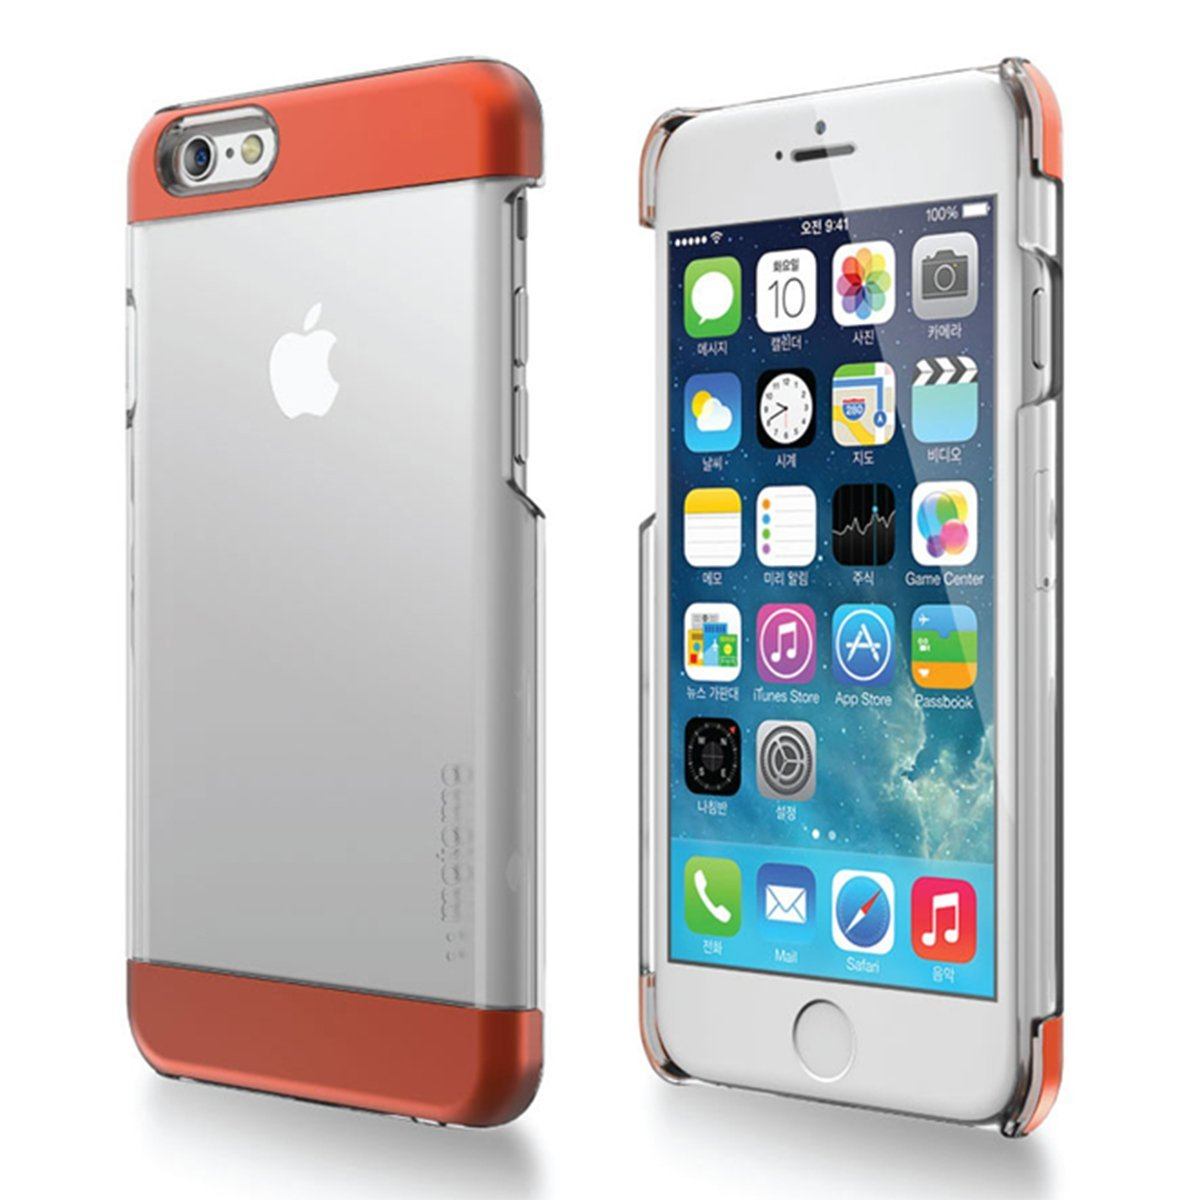 Made for Apple iPhone 6 PLUS/6S PLUS (5.5 inch) Case, INO Wing Series [Orange] Slim Clear Form-Fitting Hard Plastic Protective Case Cover by Redshield